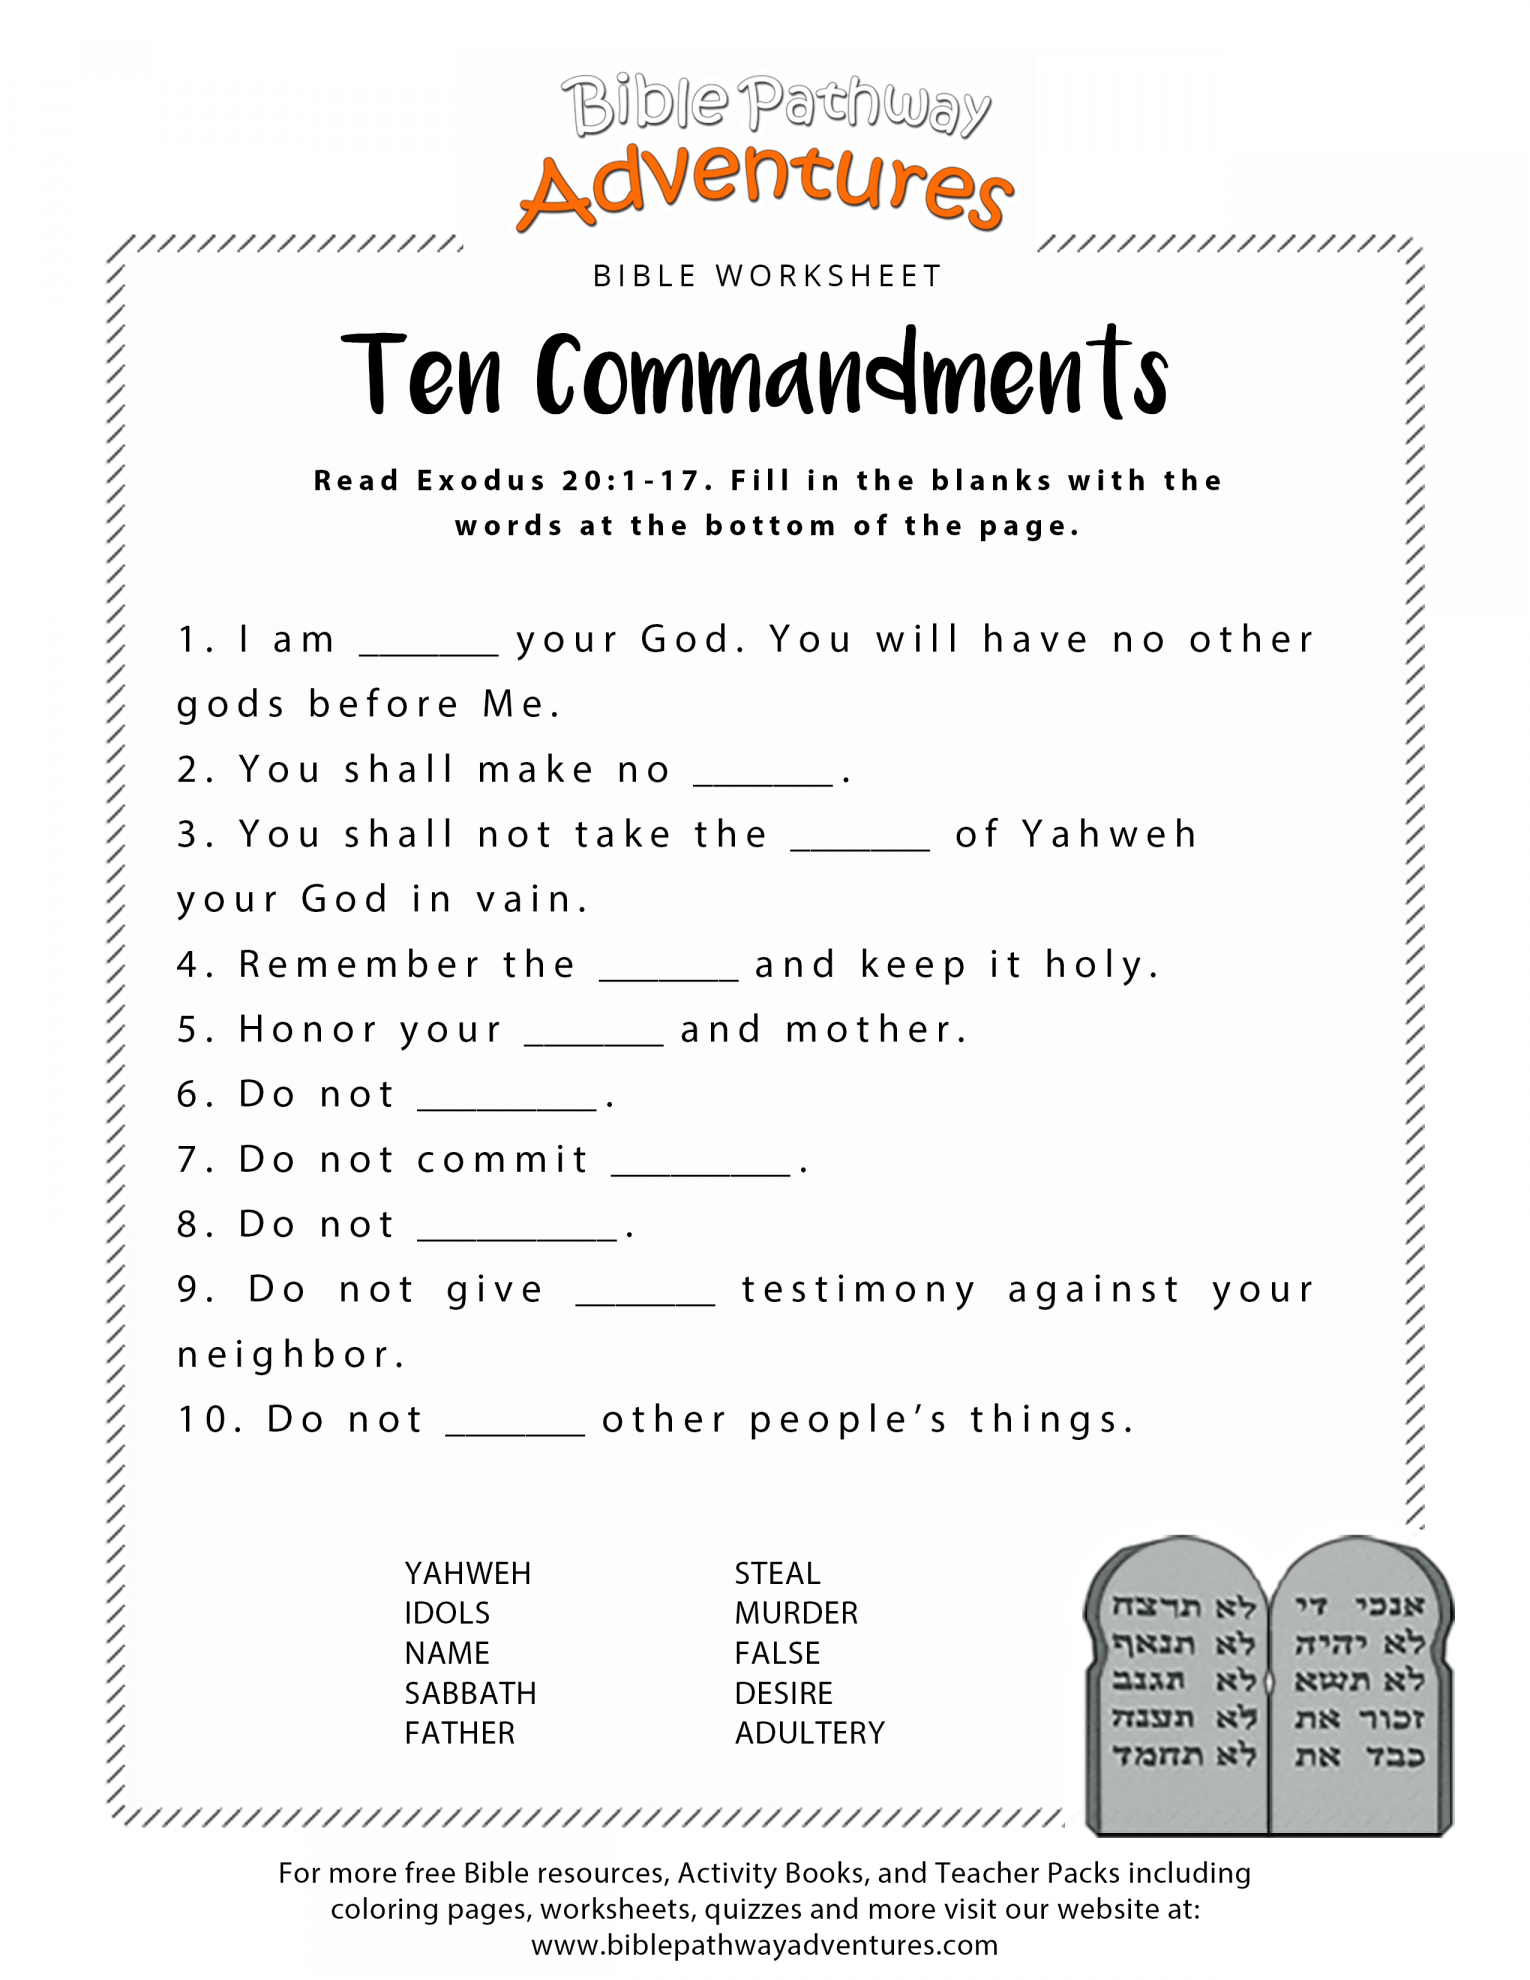 Youth Bible Study Worksheets Free Printable For Lessons Pdf - Free Printable Youth Bible Study Lessons